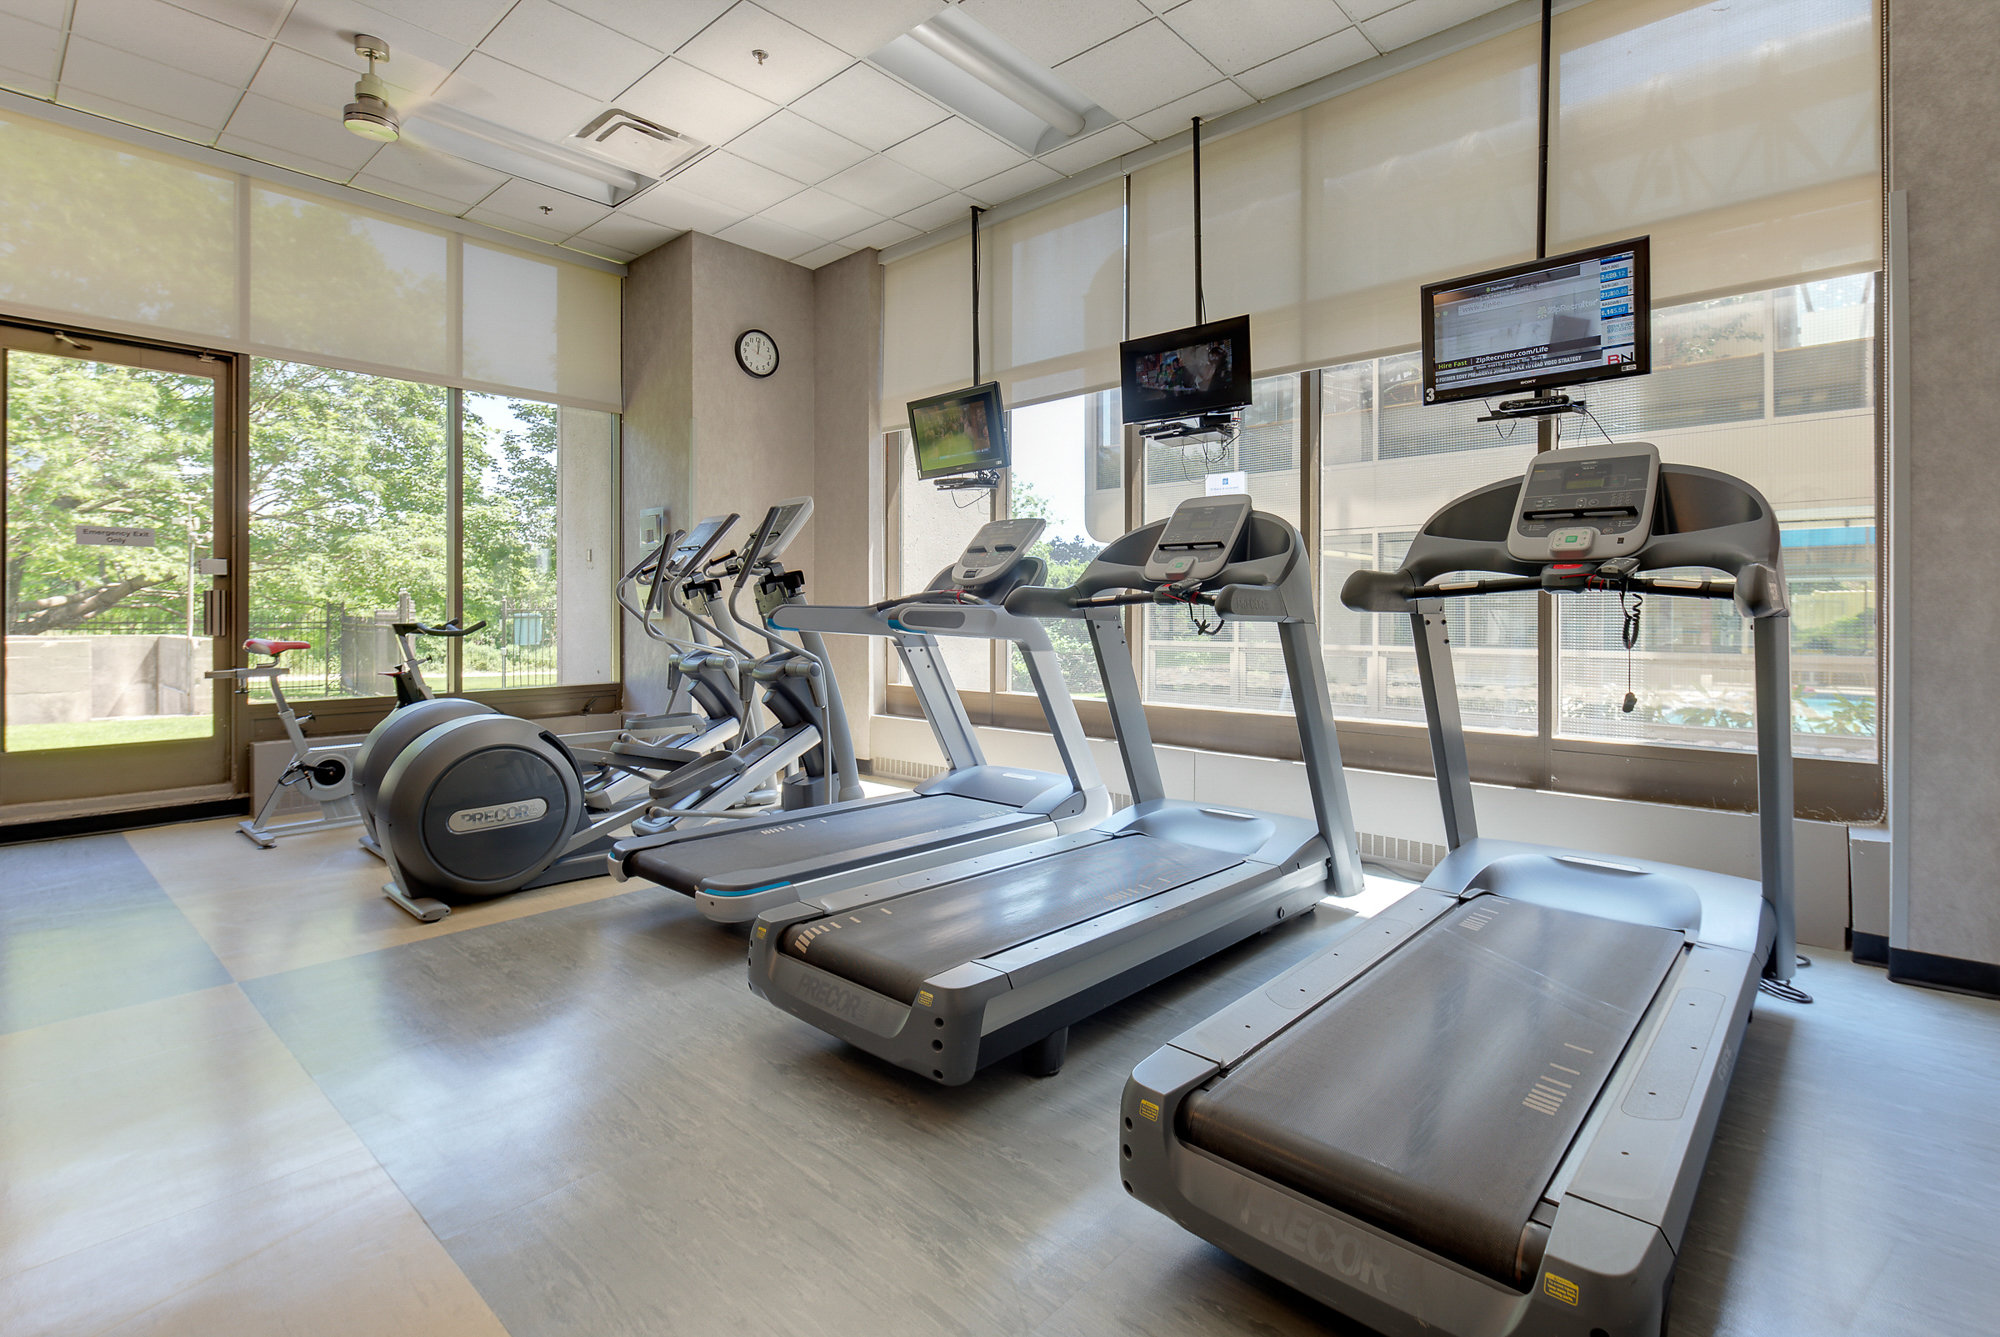 Fitness Centre & Aerobics Room